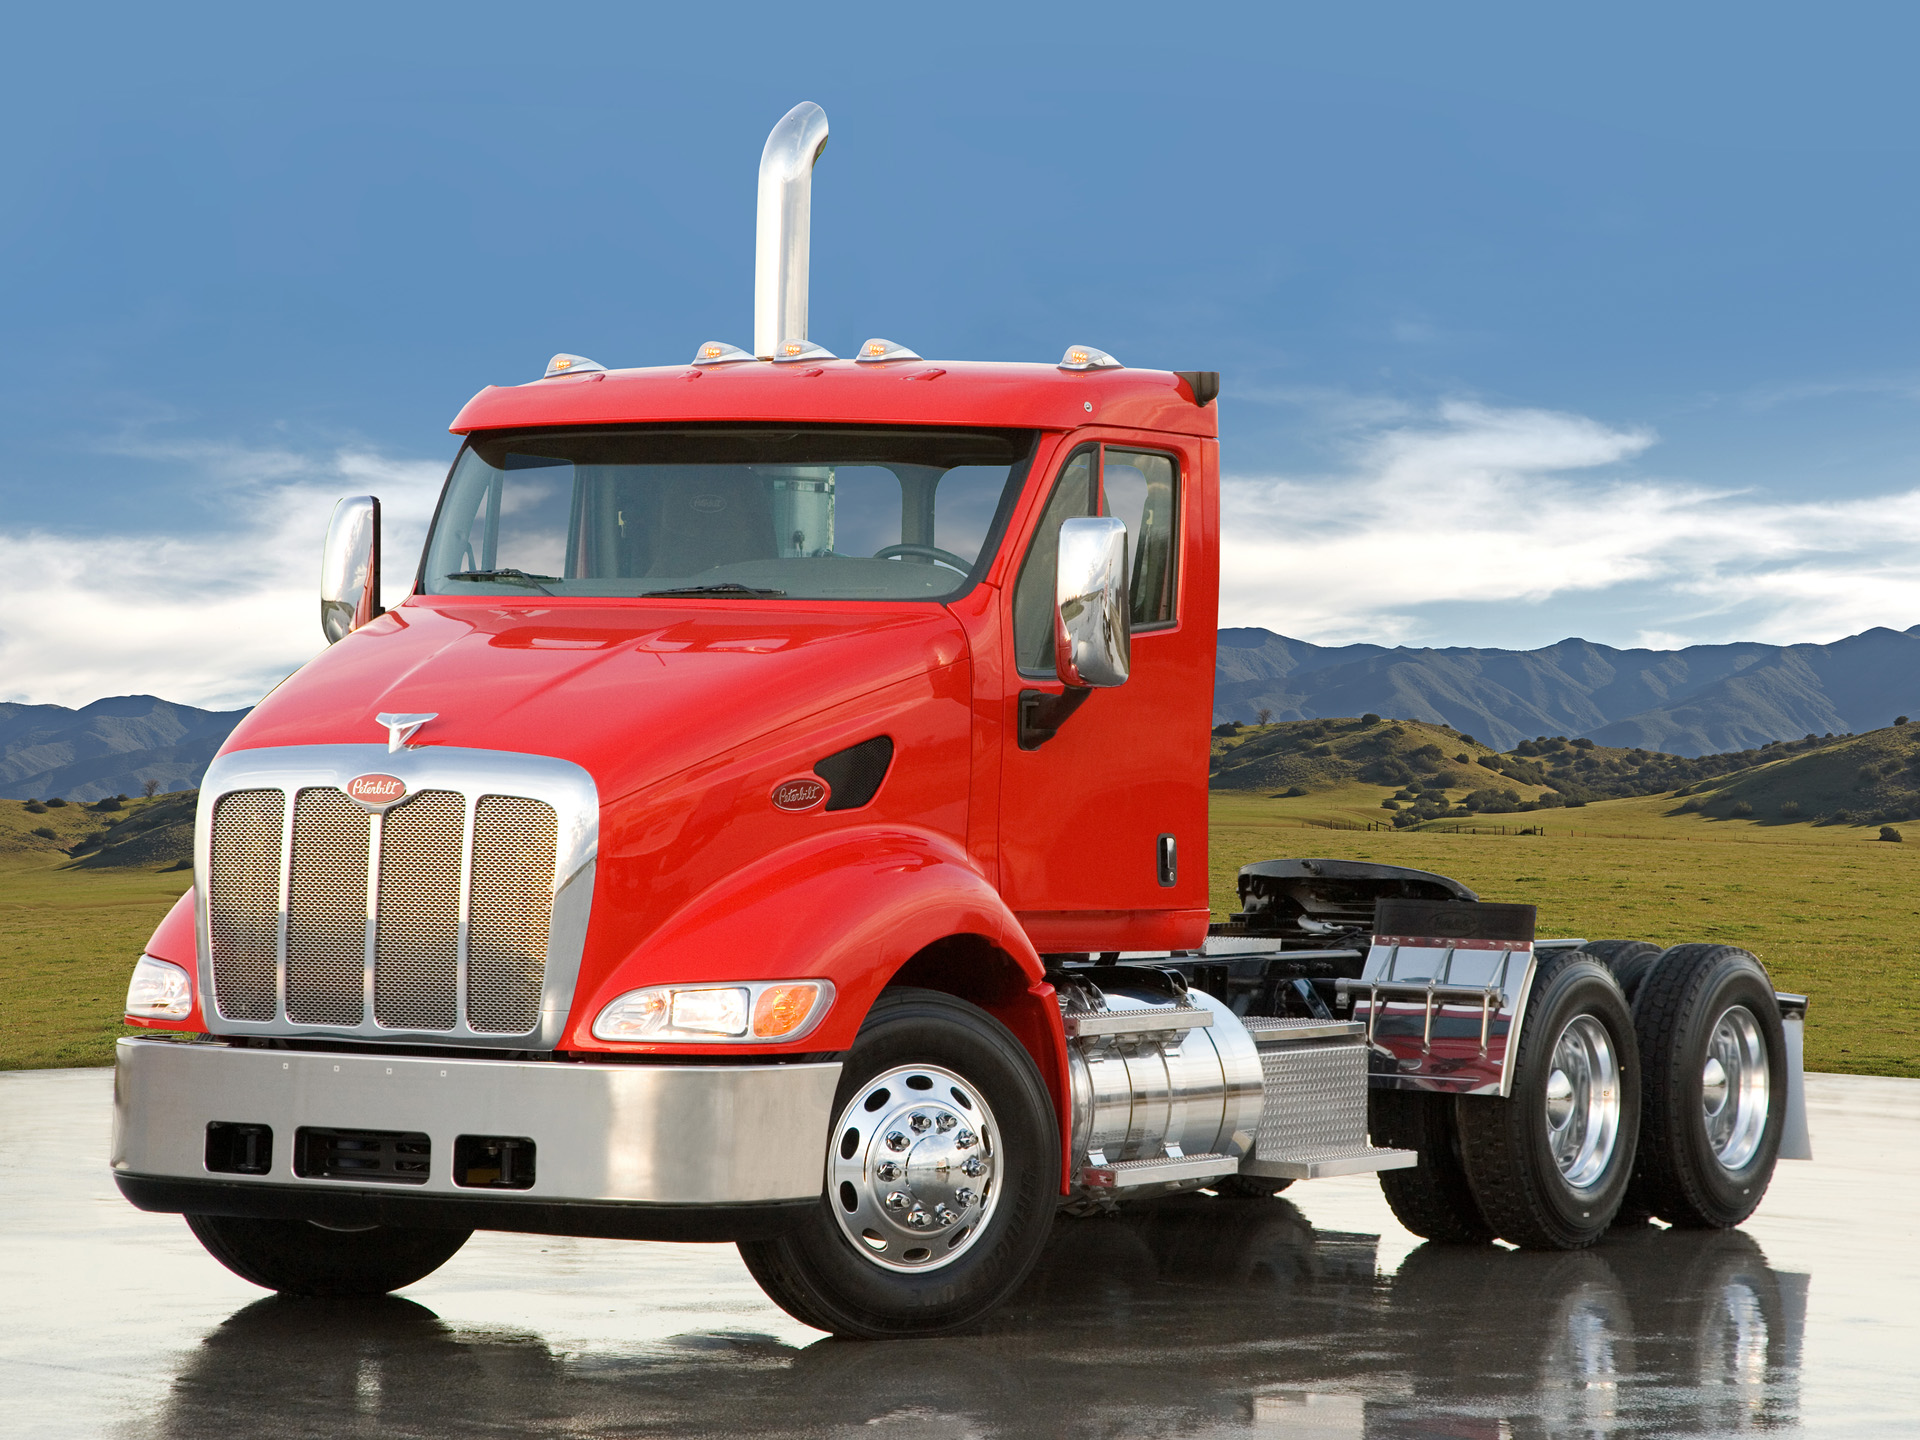 2016 Peterbilt Autos Post HD Wallpapers Download free images and photos [musssic.tk]